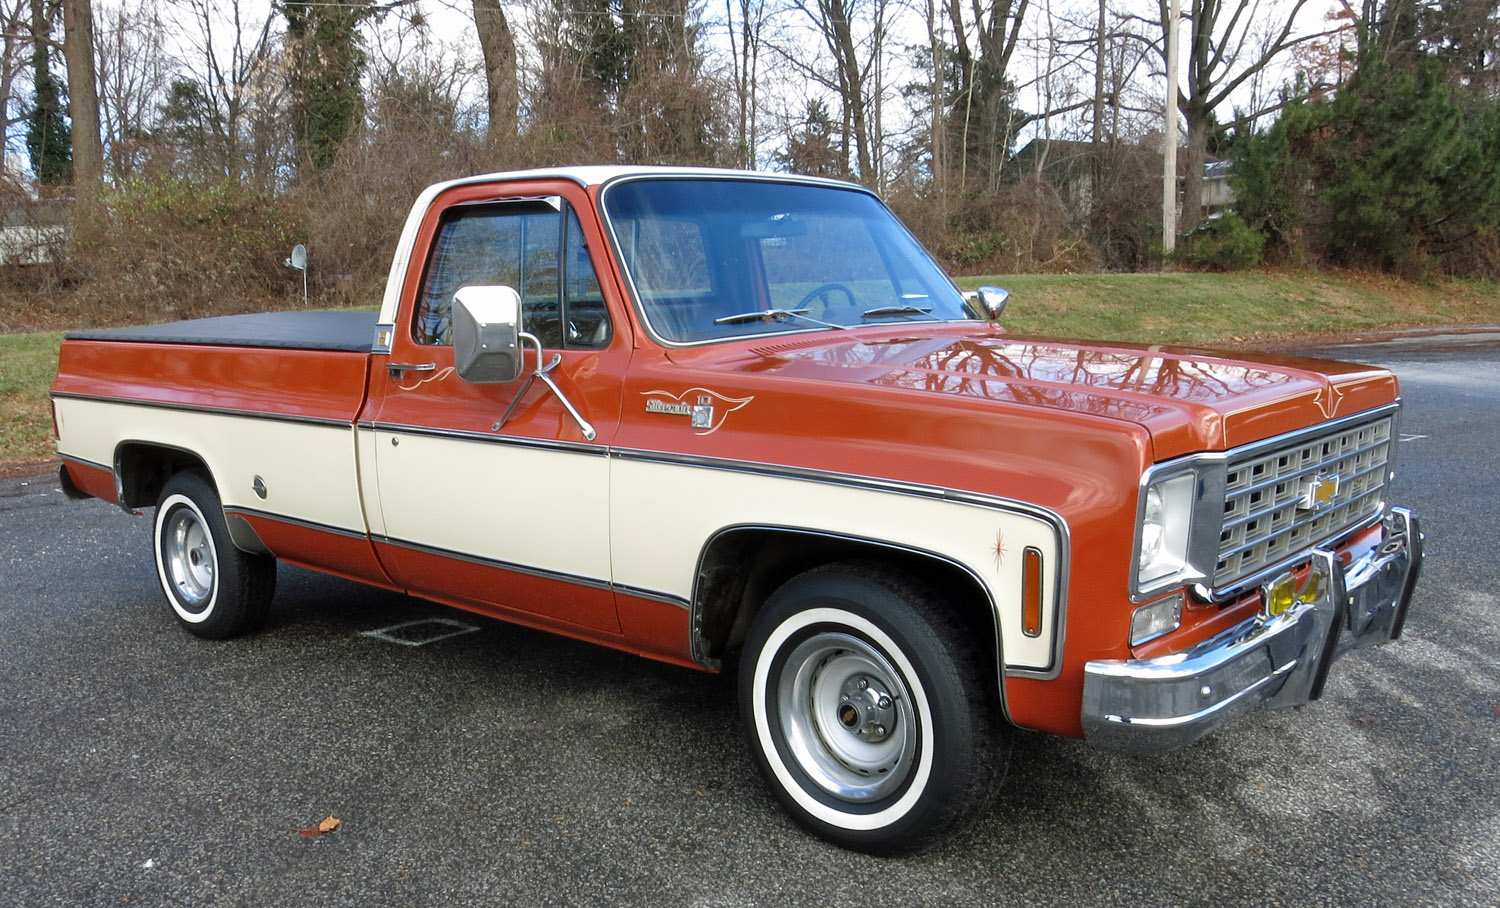 hight resolution of image result for 76 chevy pickup orange